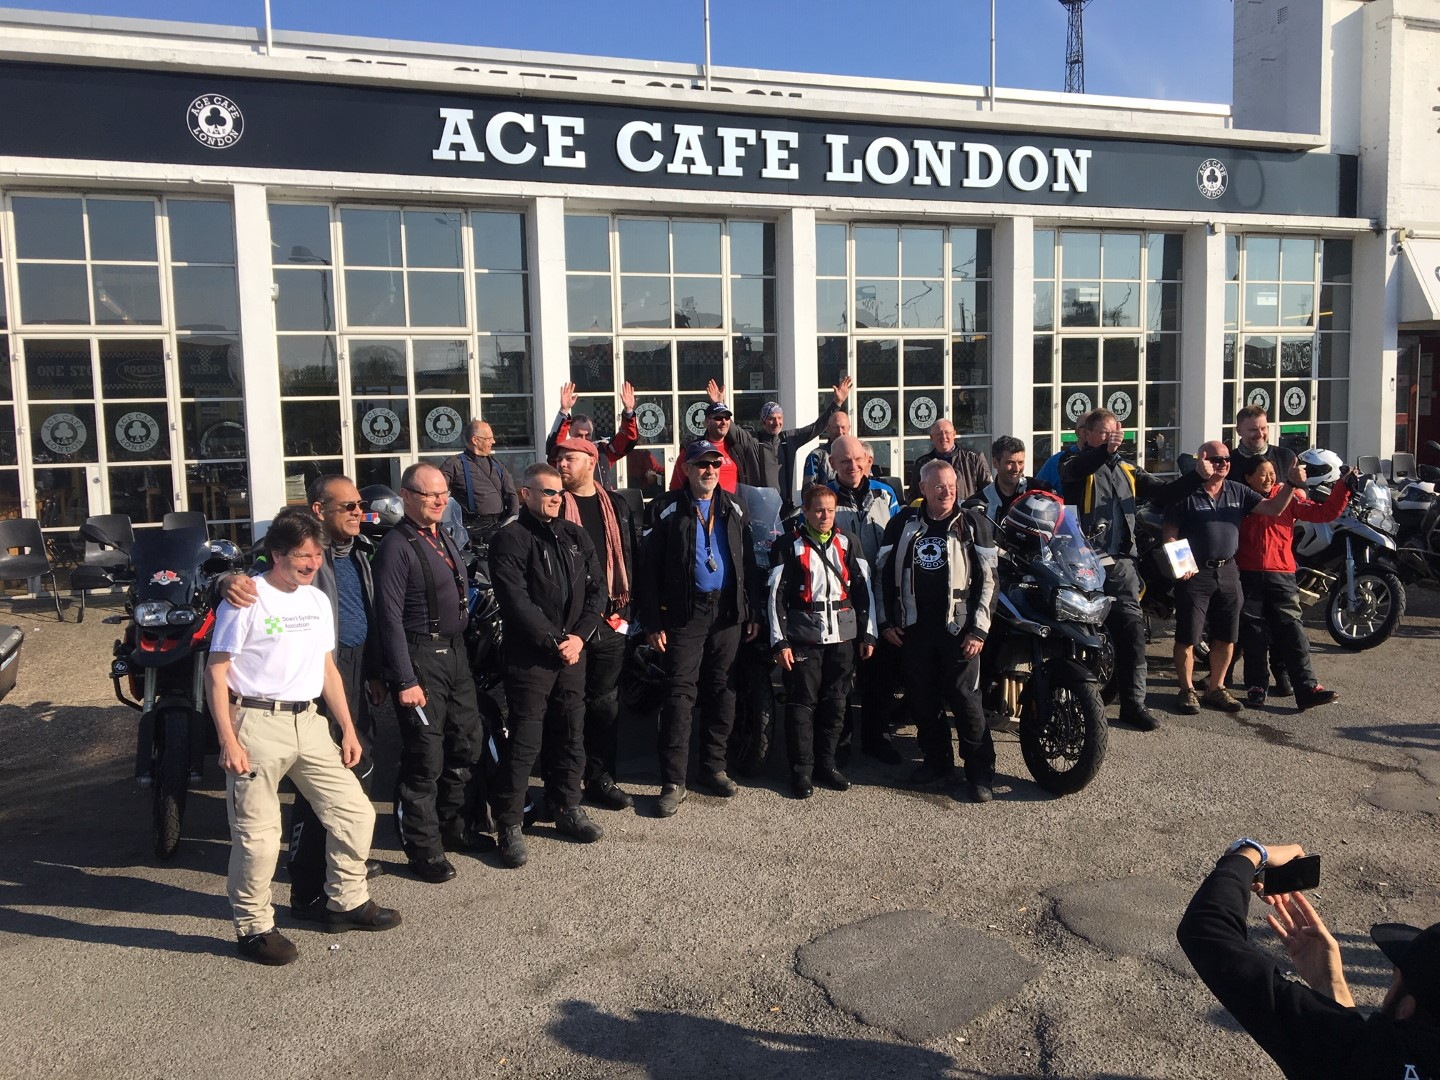 Group outside the Ace